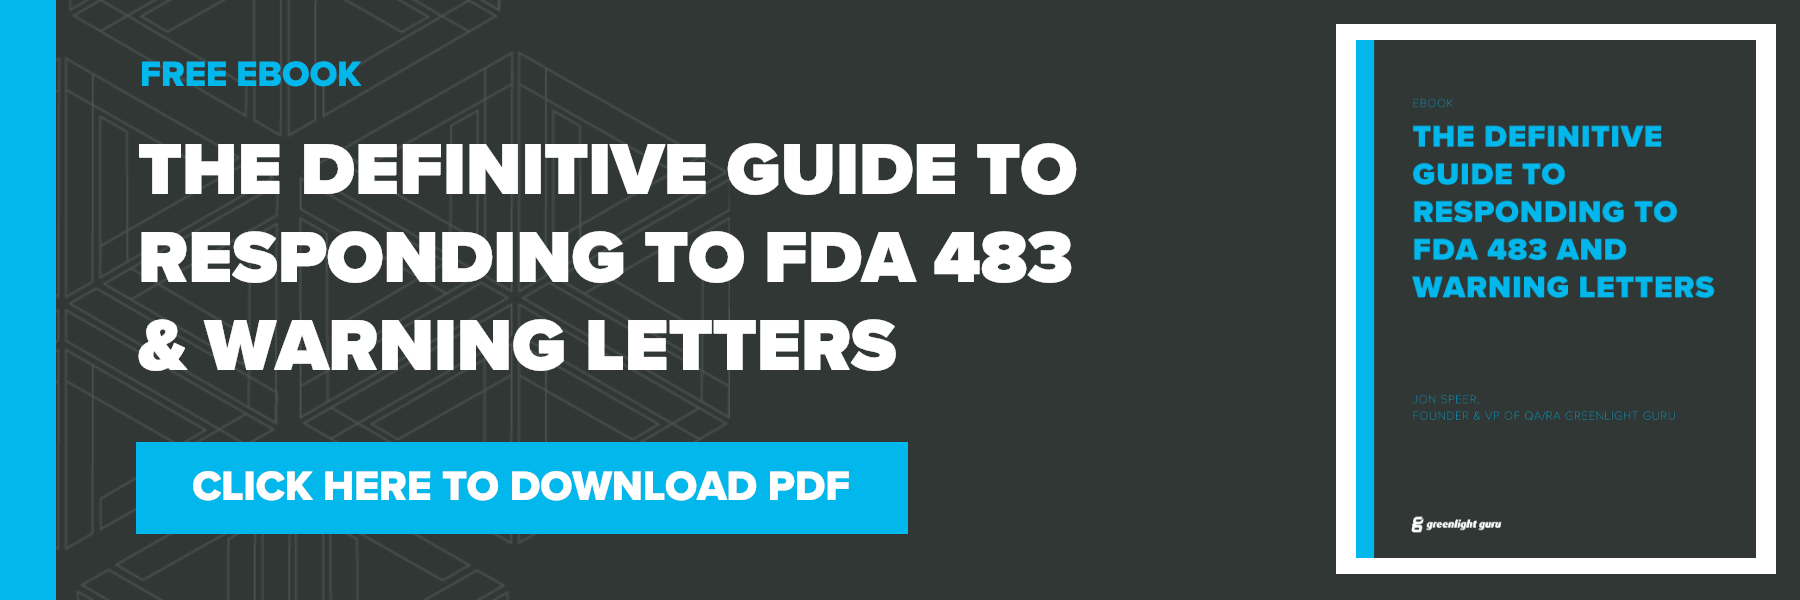 how to respond to FDA 483 observations and warning letters PDF download